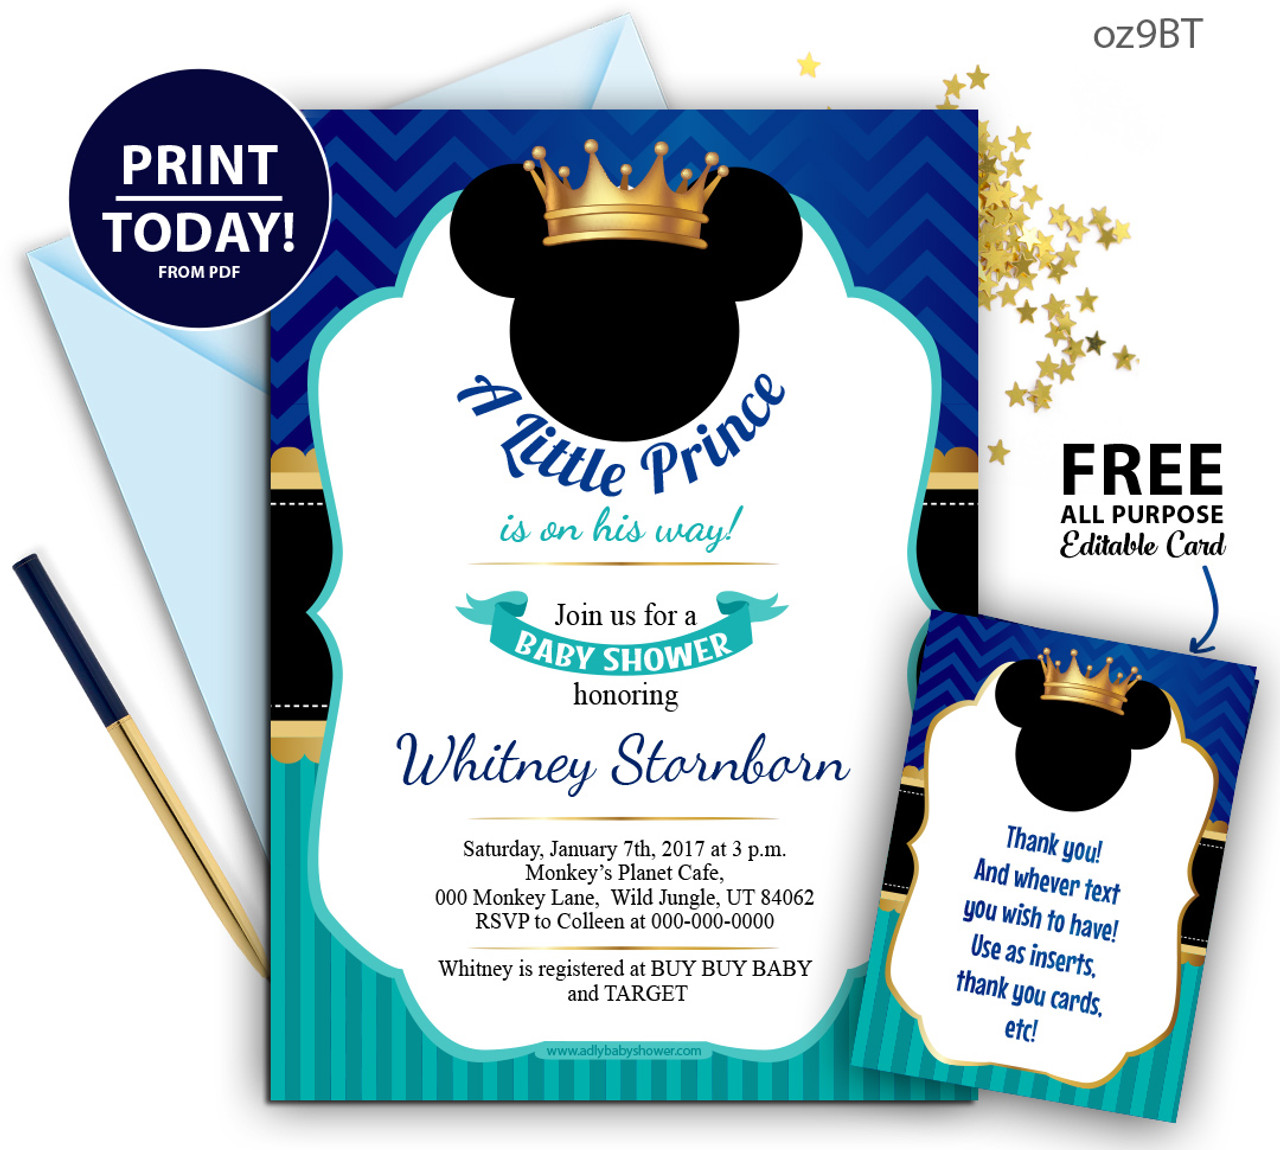 royal prince mickey baby shower blue and turqoiuse invitation crown digital mickey mouse invitation oz9bt